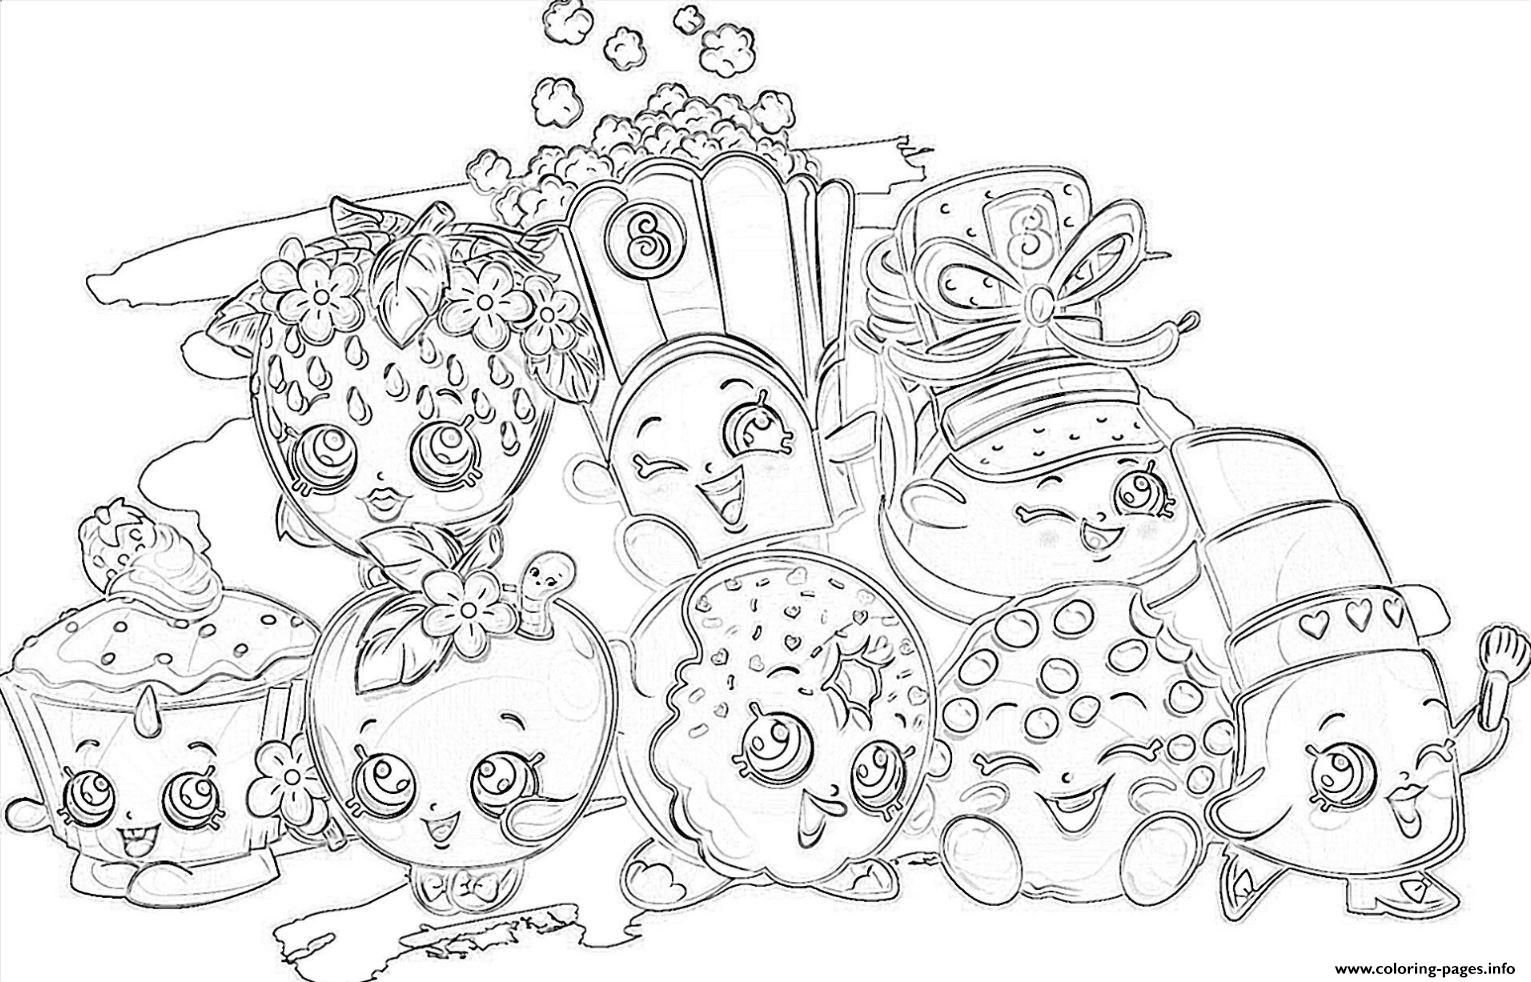 Print Shopkins All The Family Coloring Pages Family Coloring Pages Shopkins Colouring Pages Coloring Pages